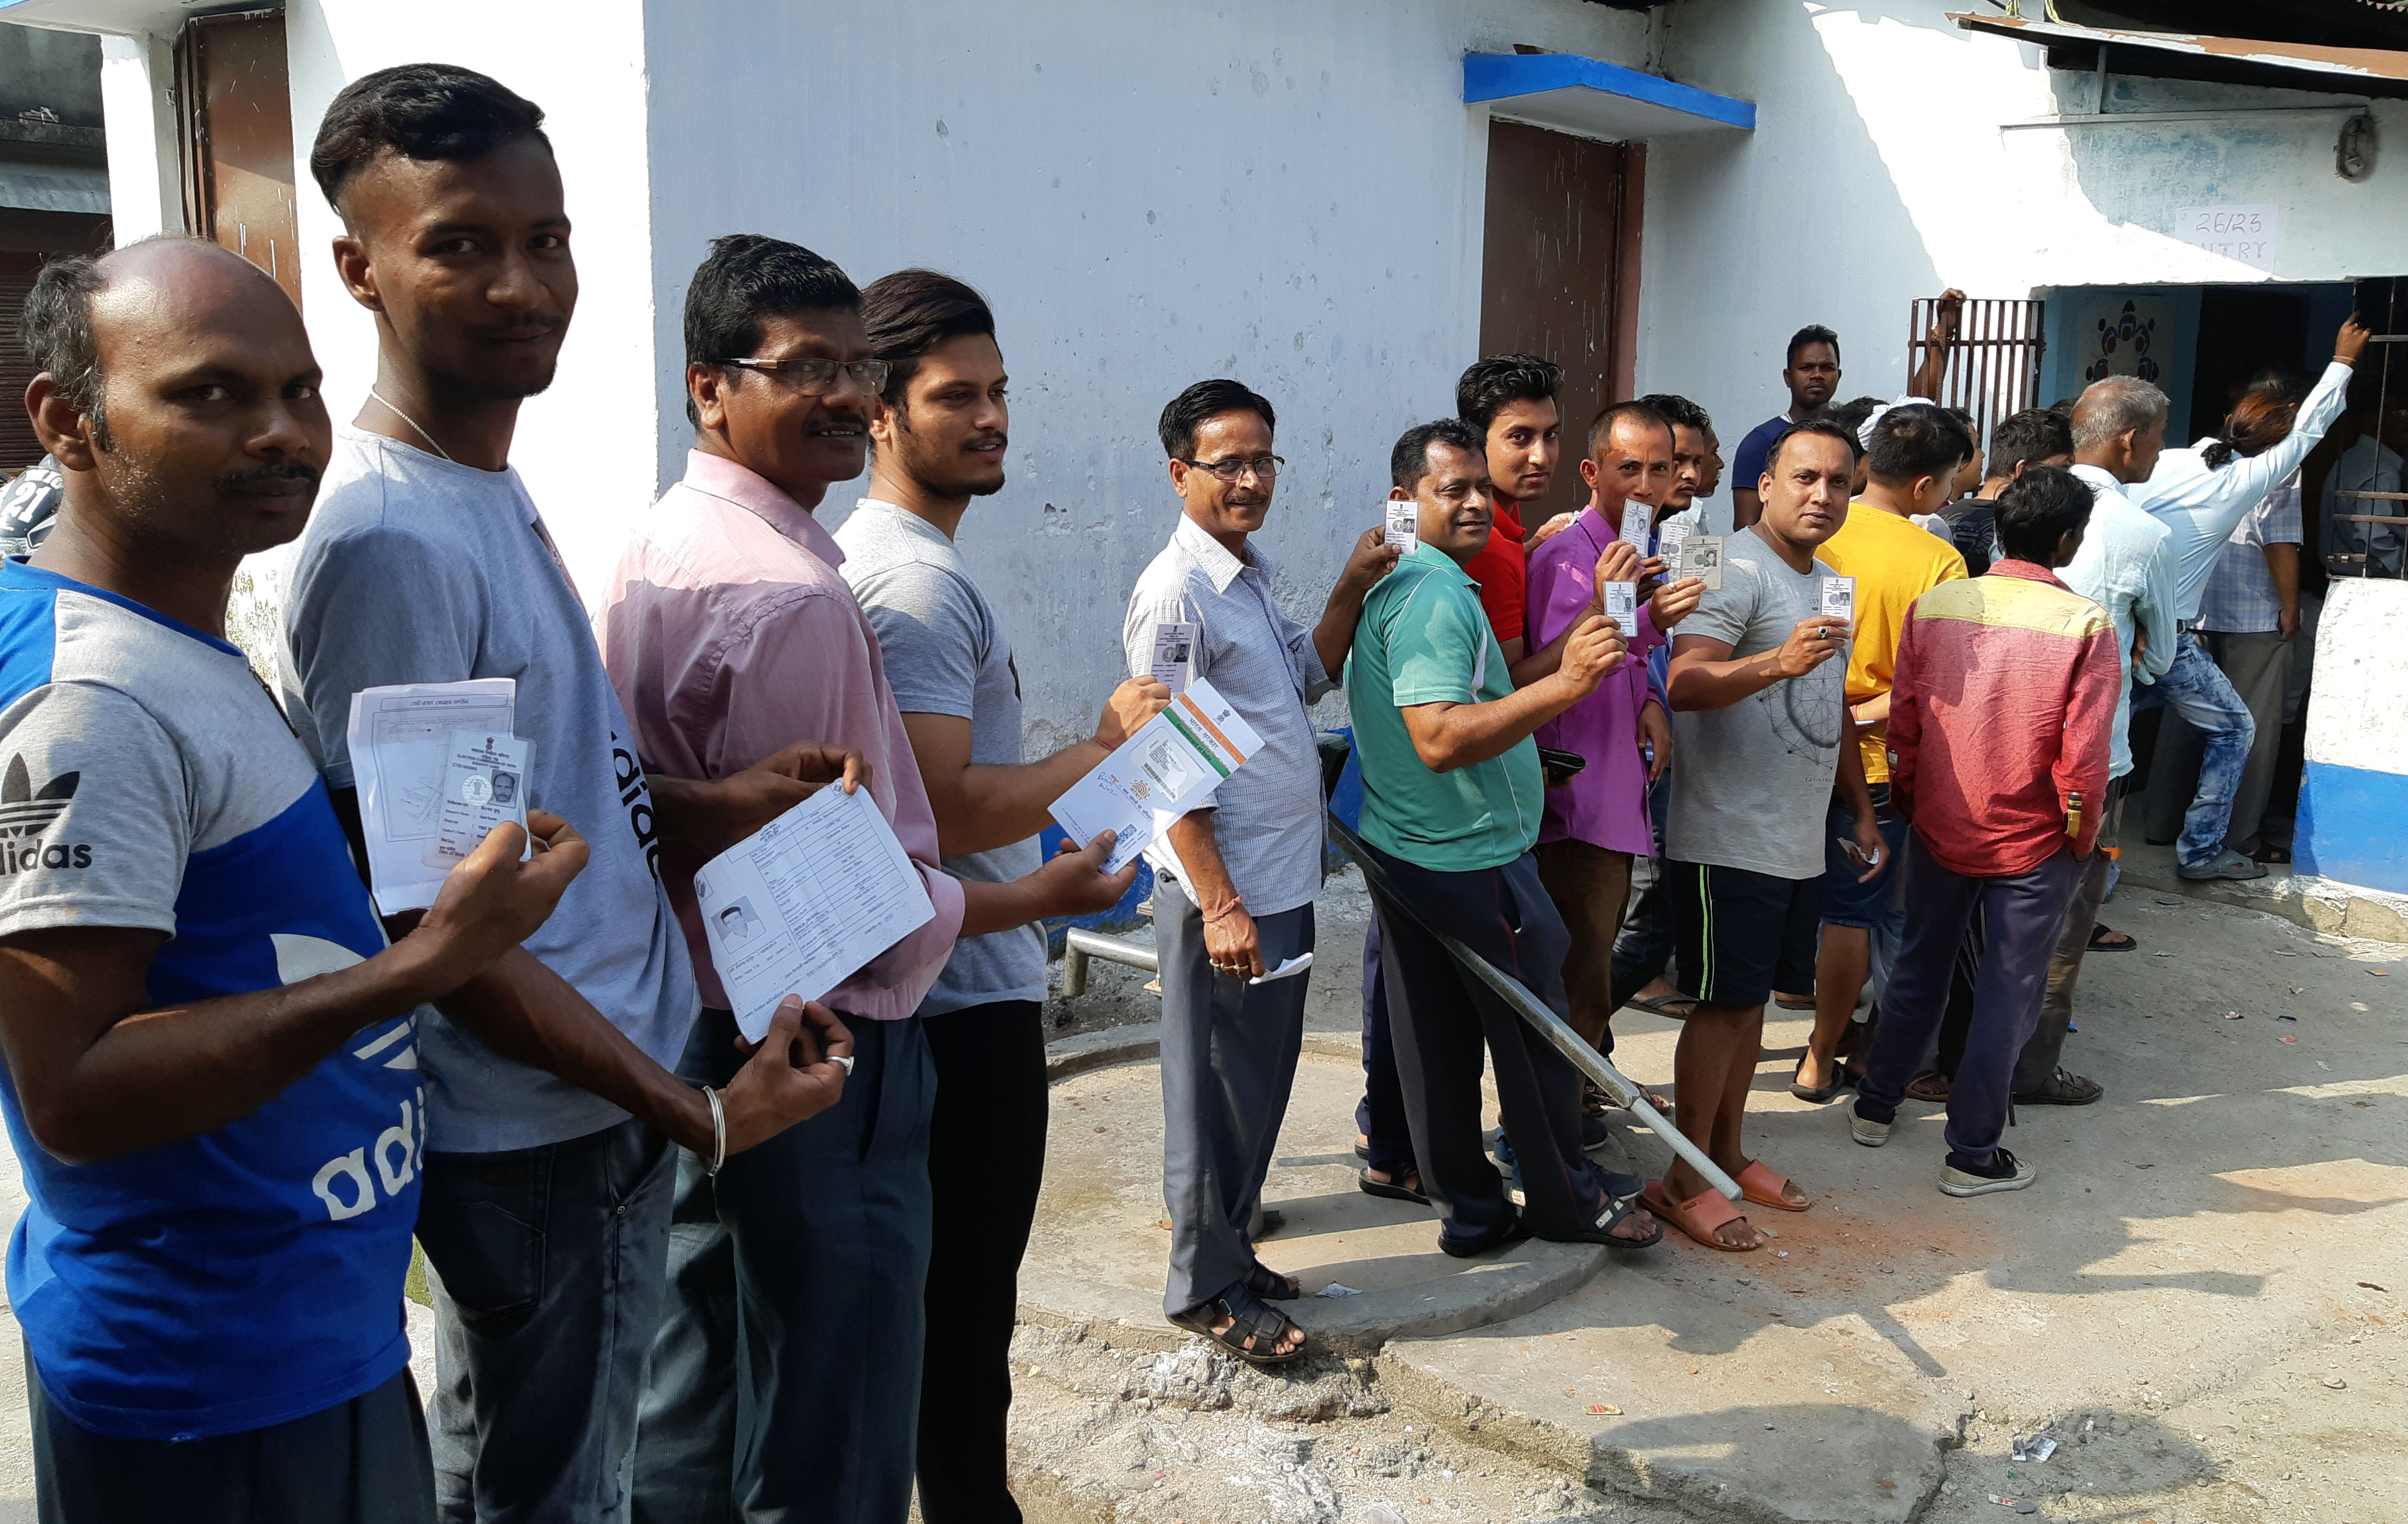 Health, education ignored in country's 'oldest democracy', say voters in Bihar's Vaishali